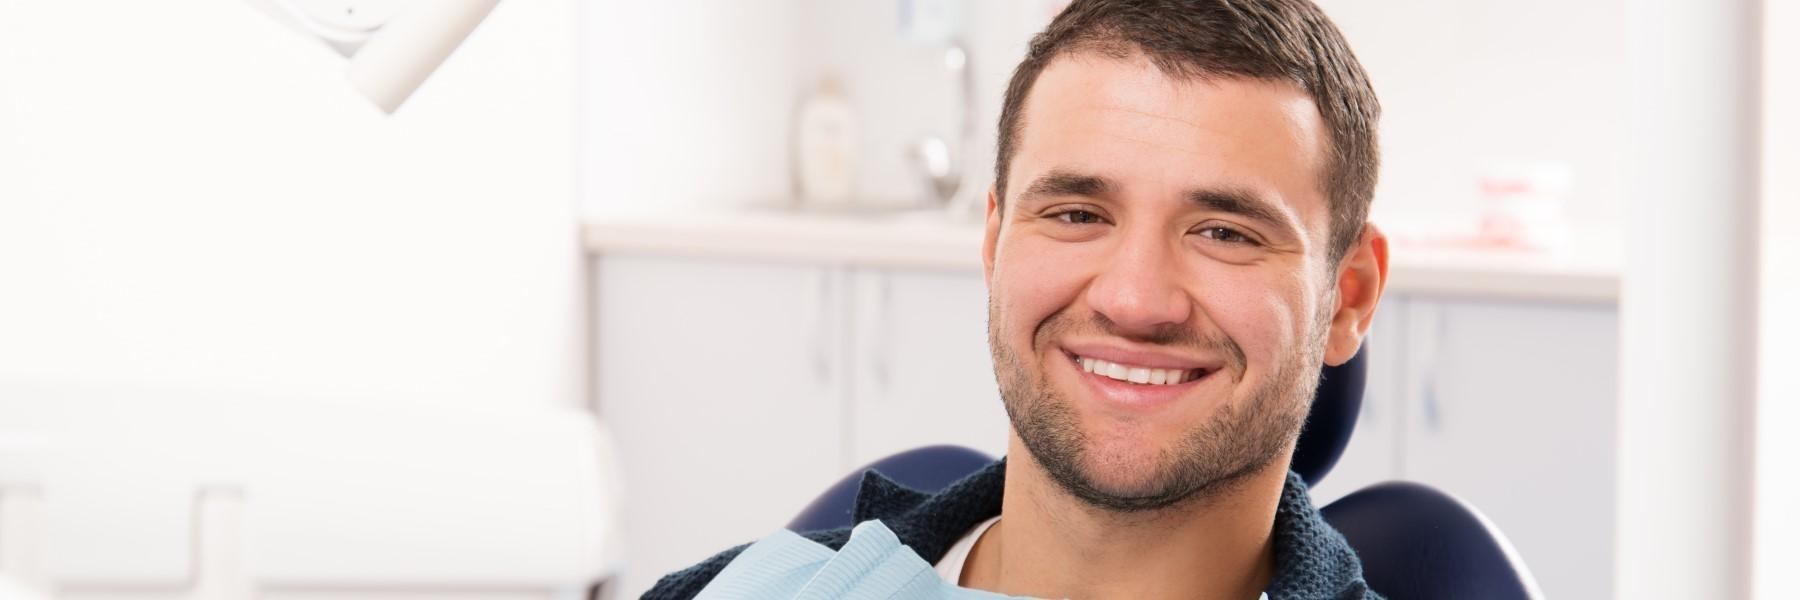 Man smiling in dental chair | Springfield IL Dentist